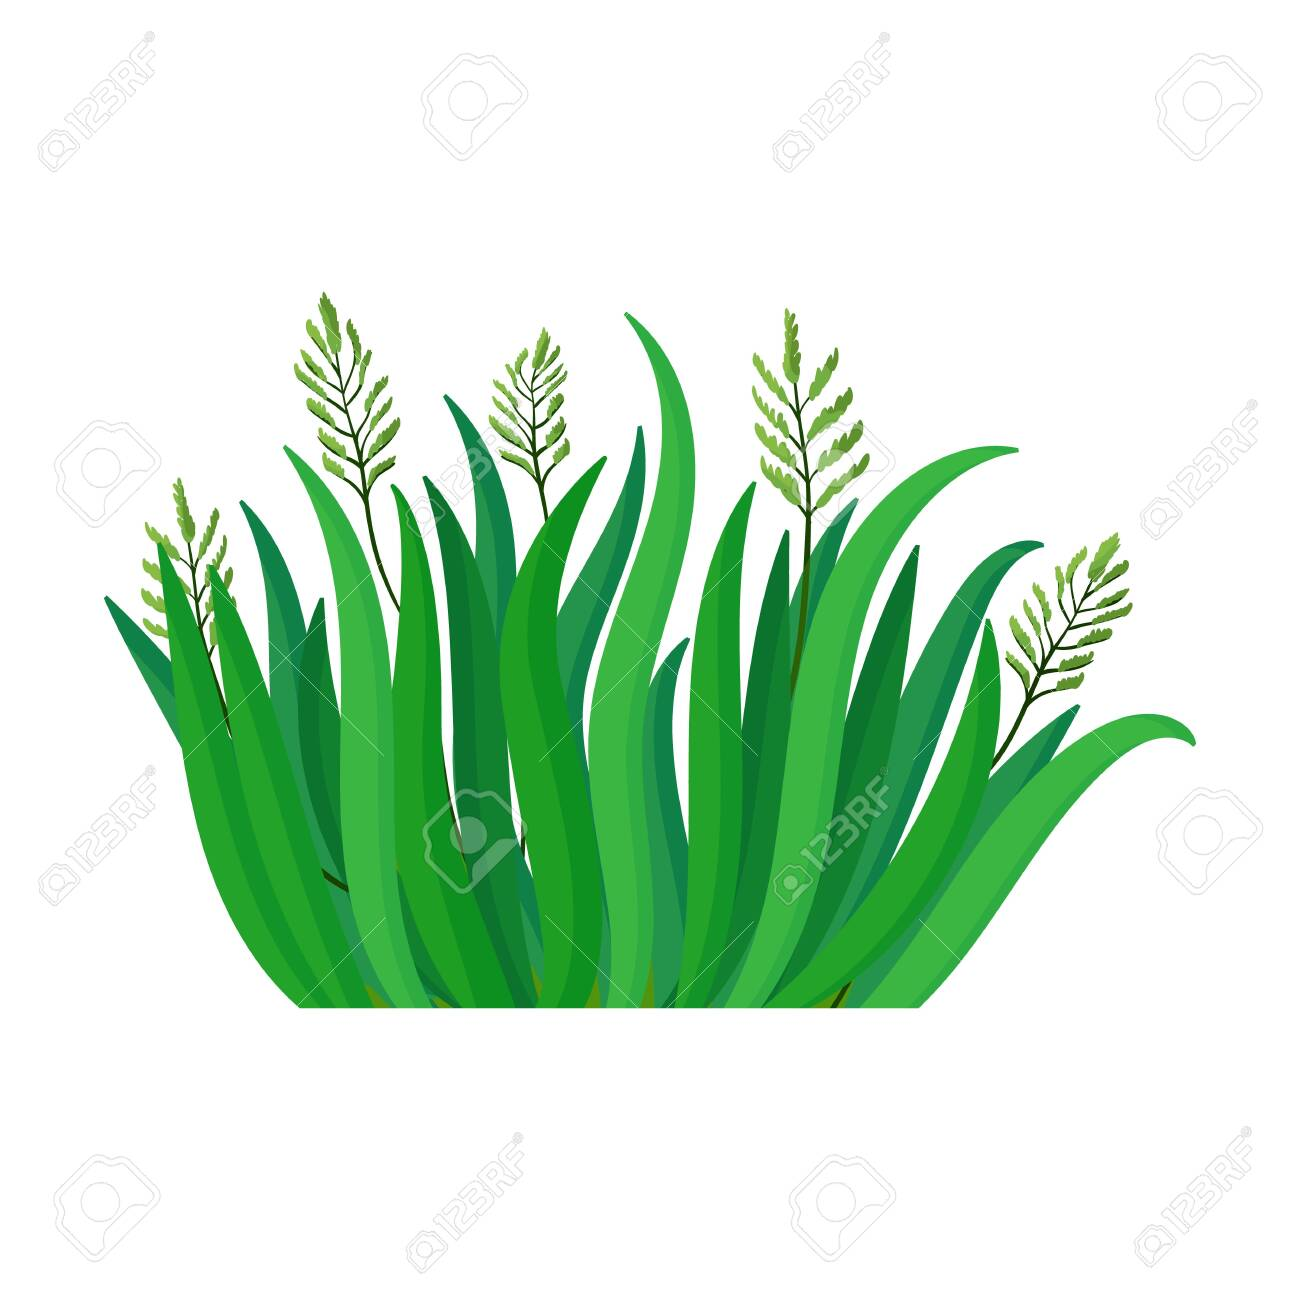 green grass vector icon cartoon vector logo isolated on white royalty free cliparts vectors and stock illustration image 144486781 123rf com